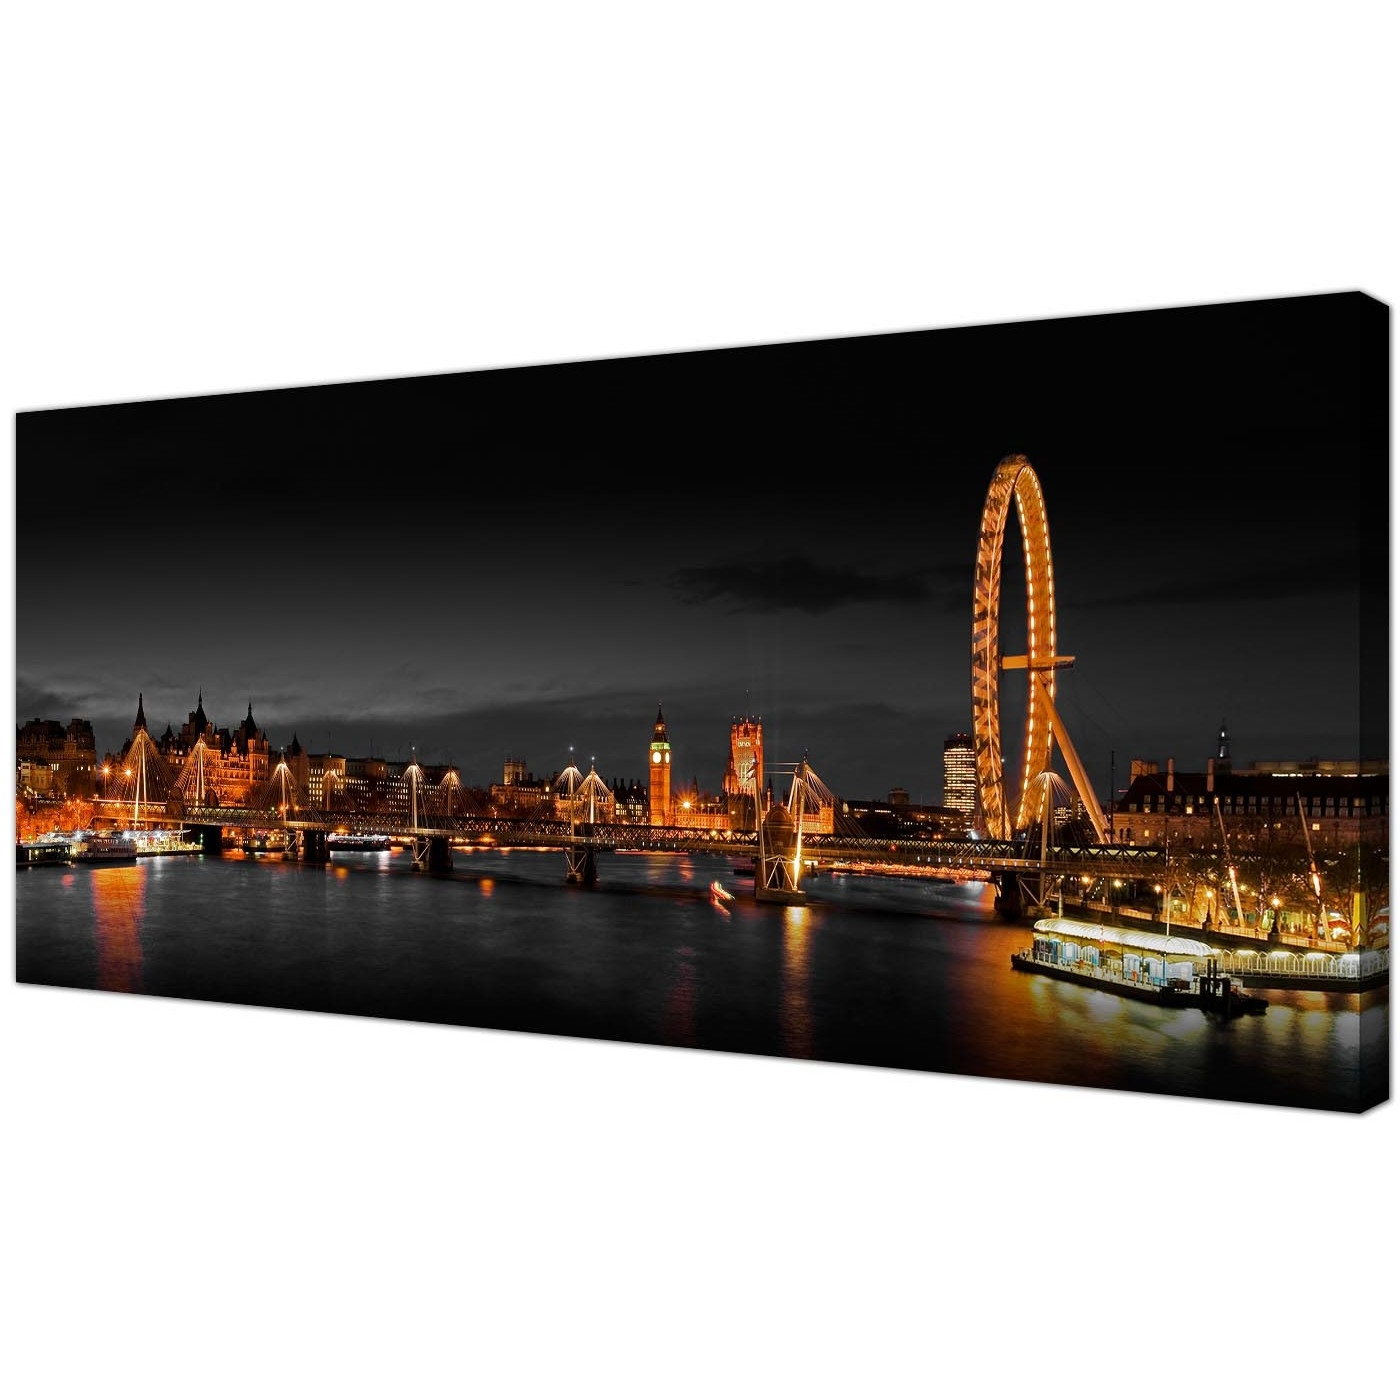 Panoramic Canvas Wall Art Of London Eye At Night For Your Living Room In Trendy Cheap Canvas Wall Art (View 11 of 15)